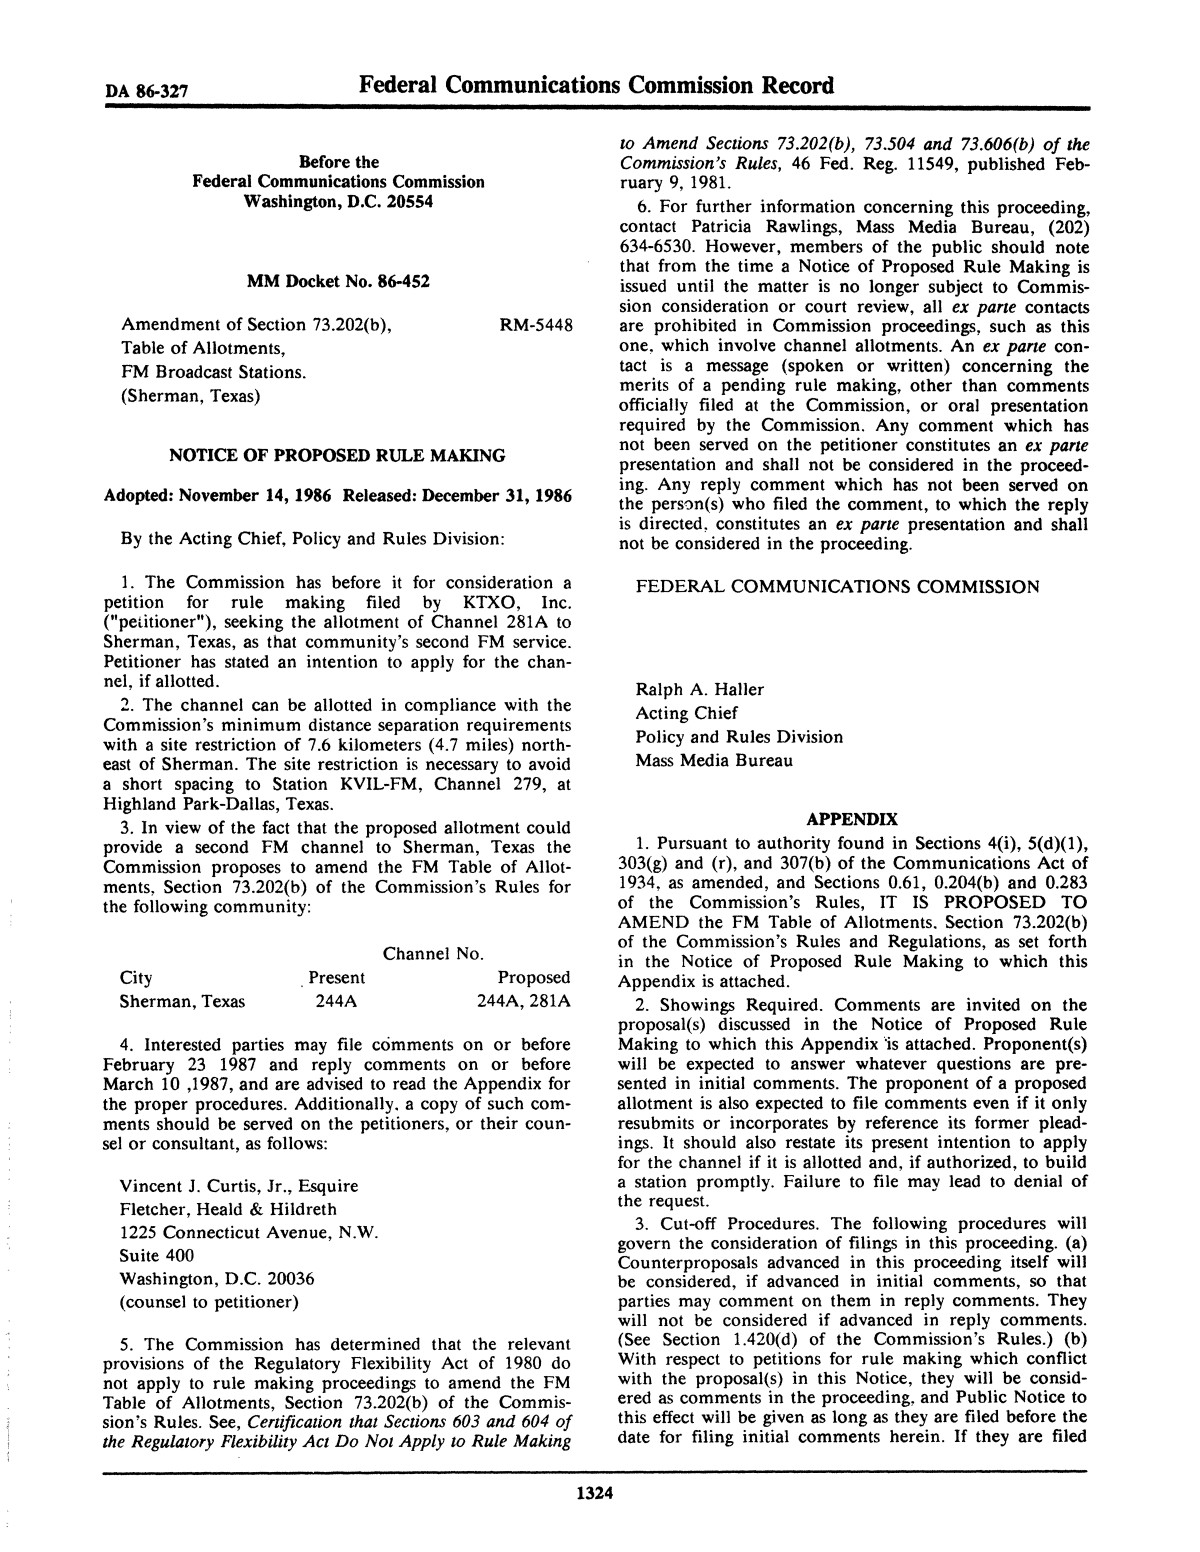 FCC Record, Volume 1, No. 7, Pages 1267 to 1368, December 22, 1986 - January 2, 1987                                                                                                      1324